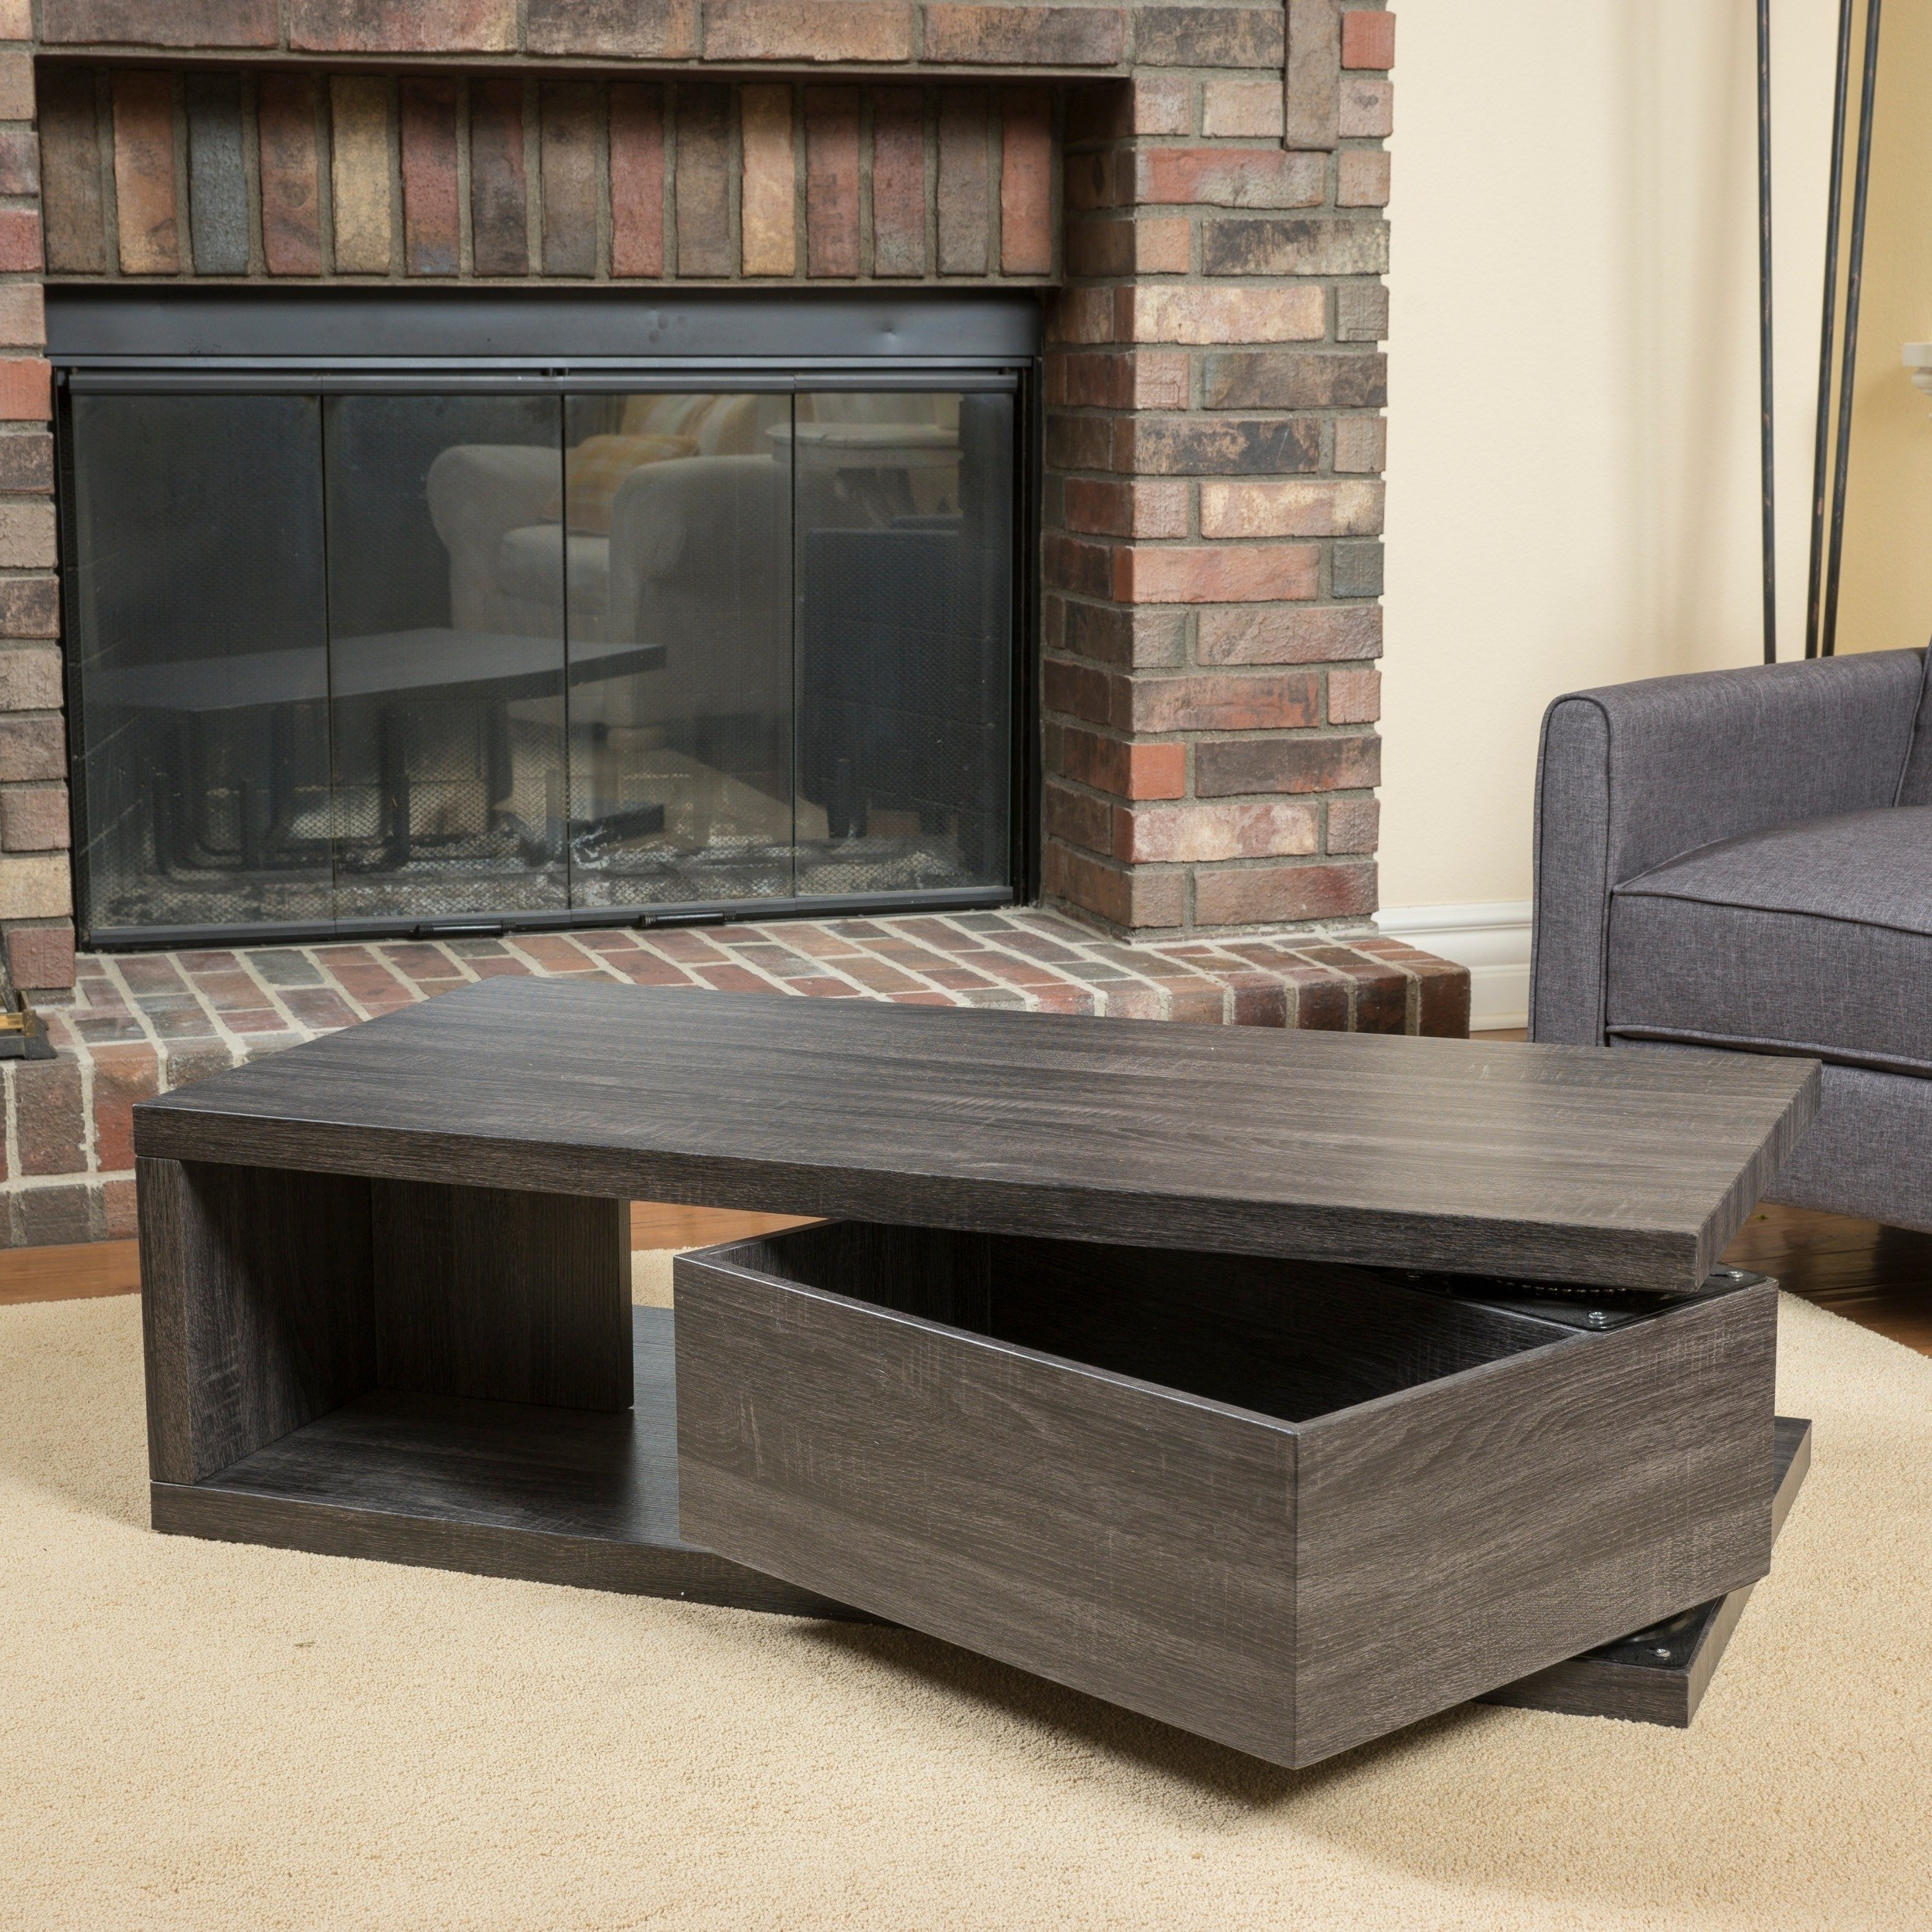 Shop Jack Rectangular Rotating Wood Coffee Tablechristopher Regarding Well Known Spin Rotating Coffee Tables (View 12 of 20)